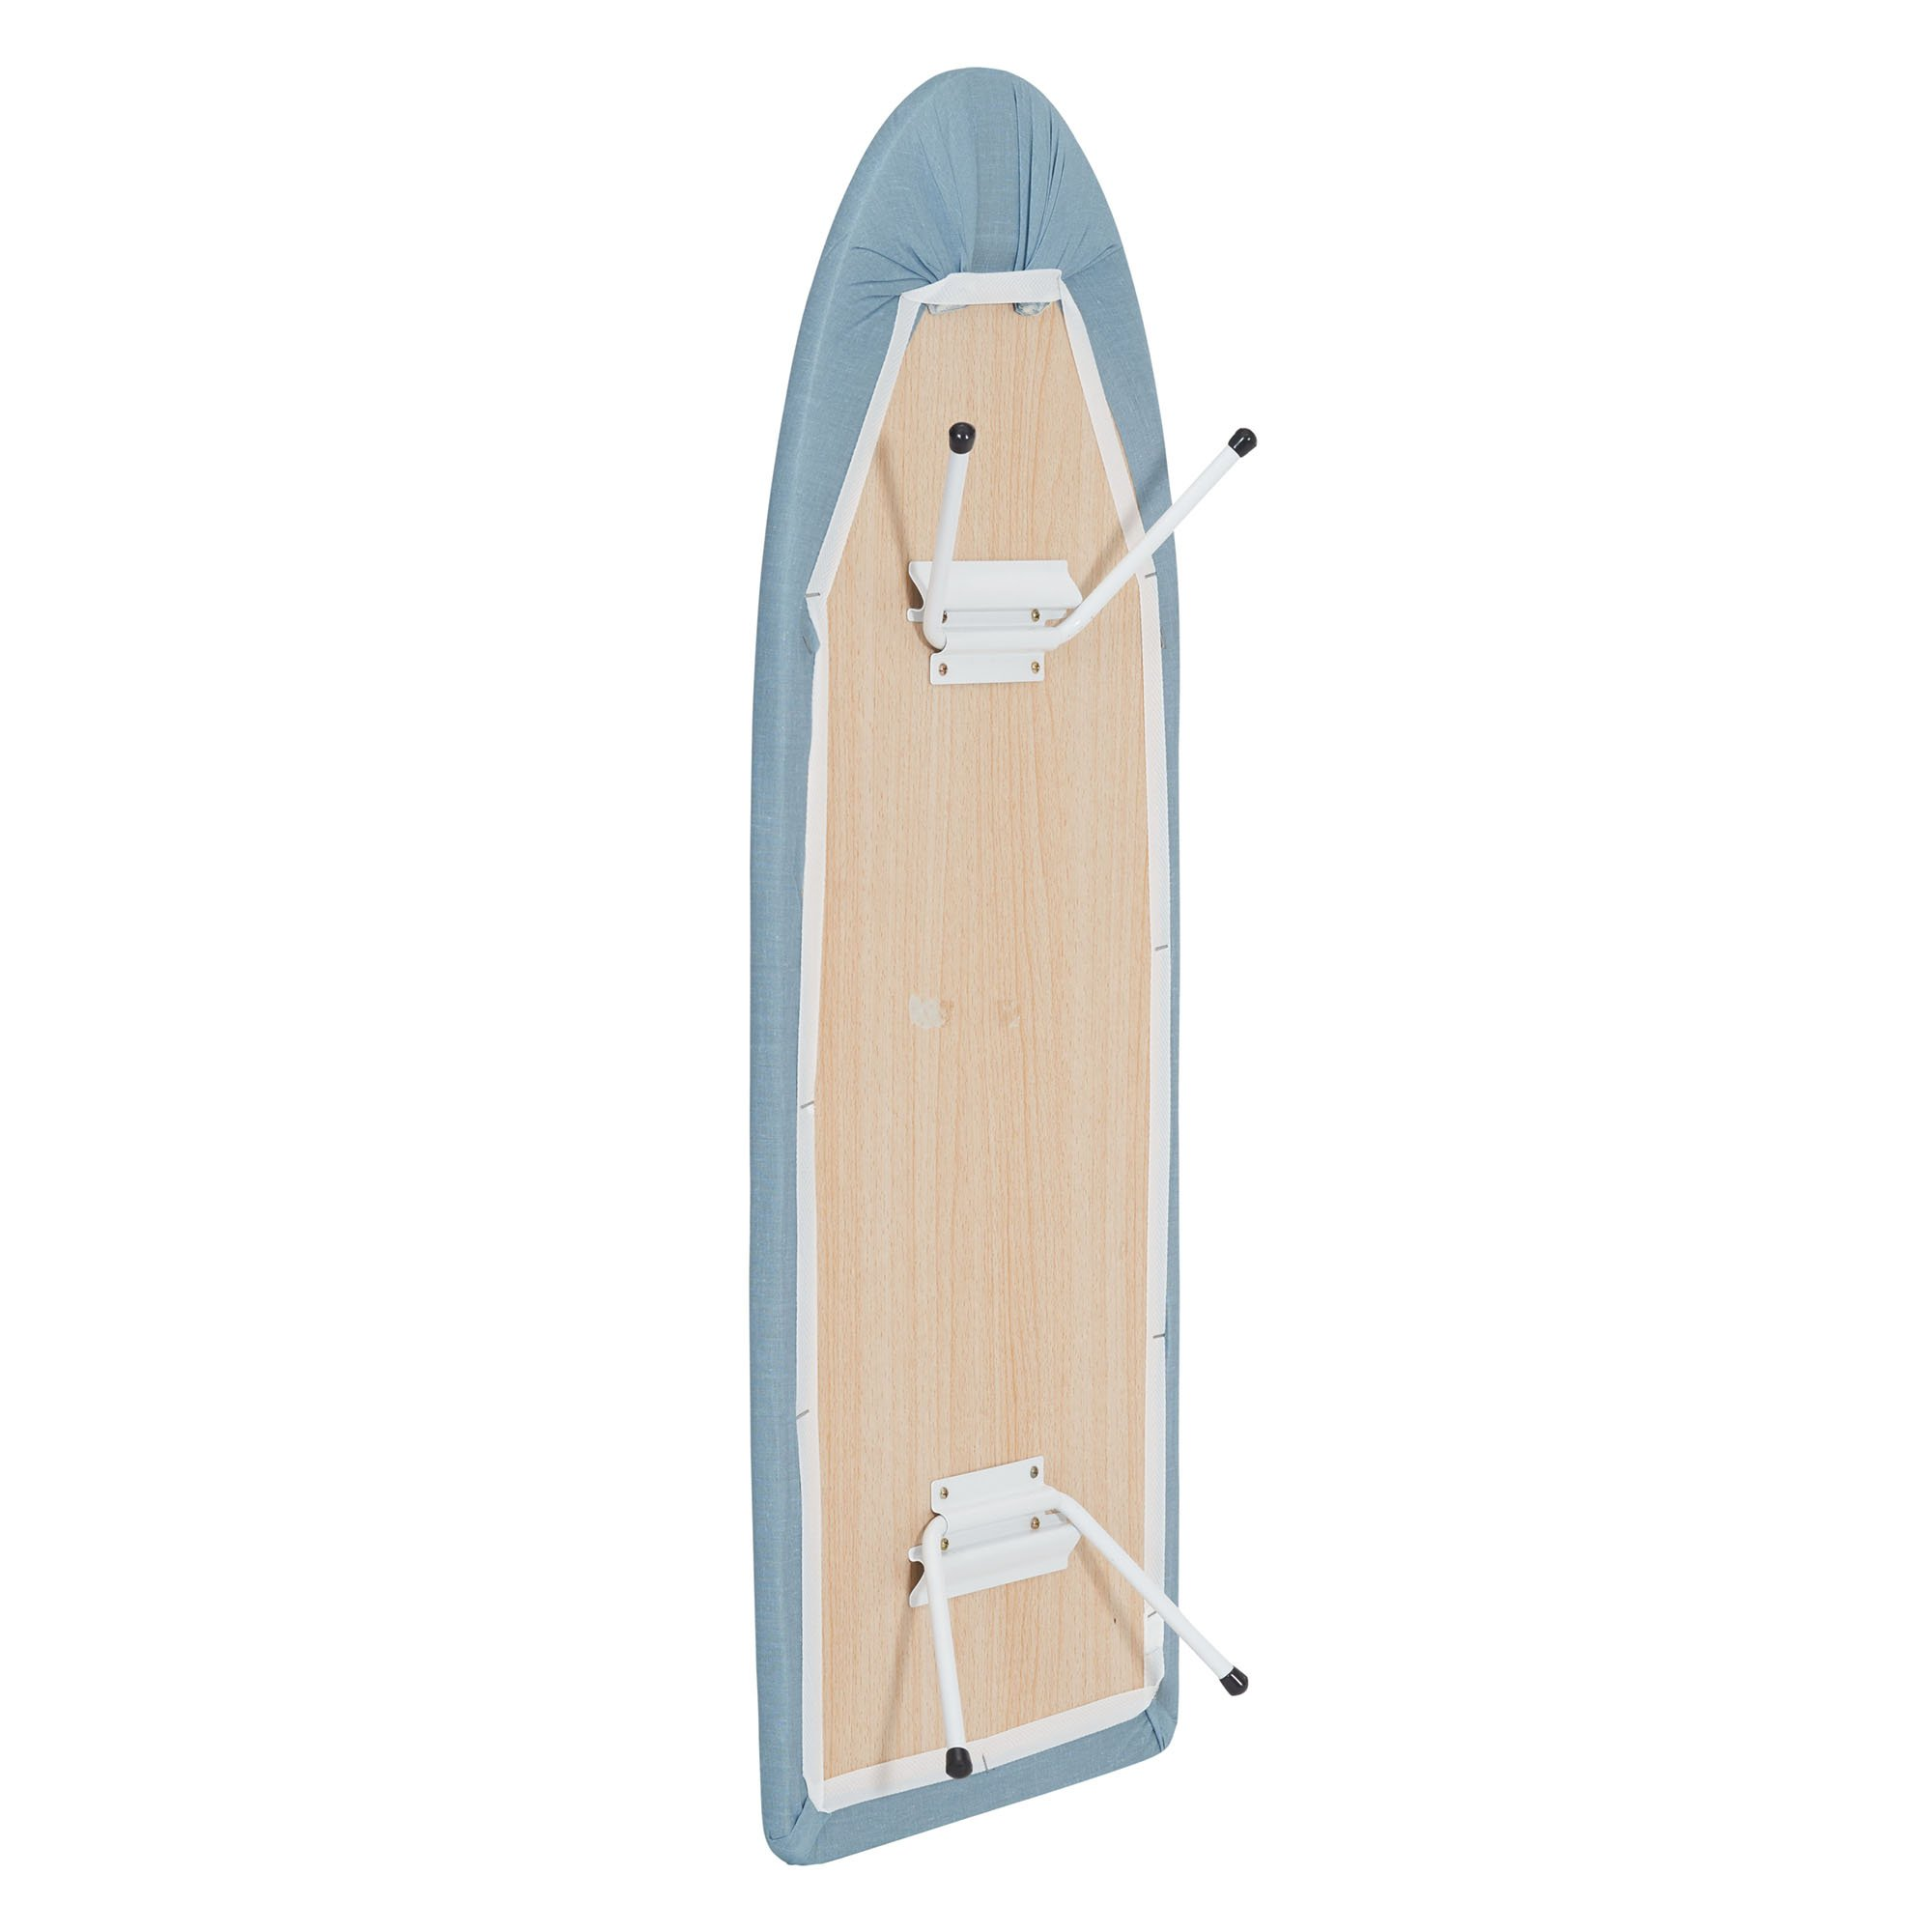 Household Essentials 120101-0 Collapsible Space Saving Tabletop Ironing Board with Folding Legs | Blue by Household Essentials